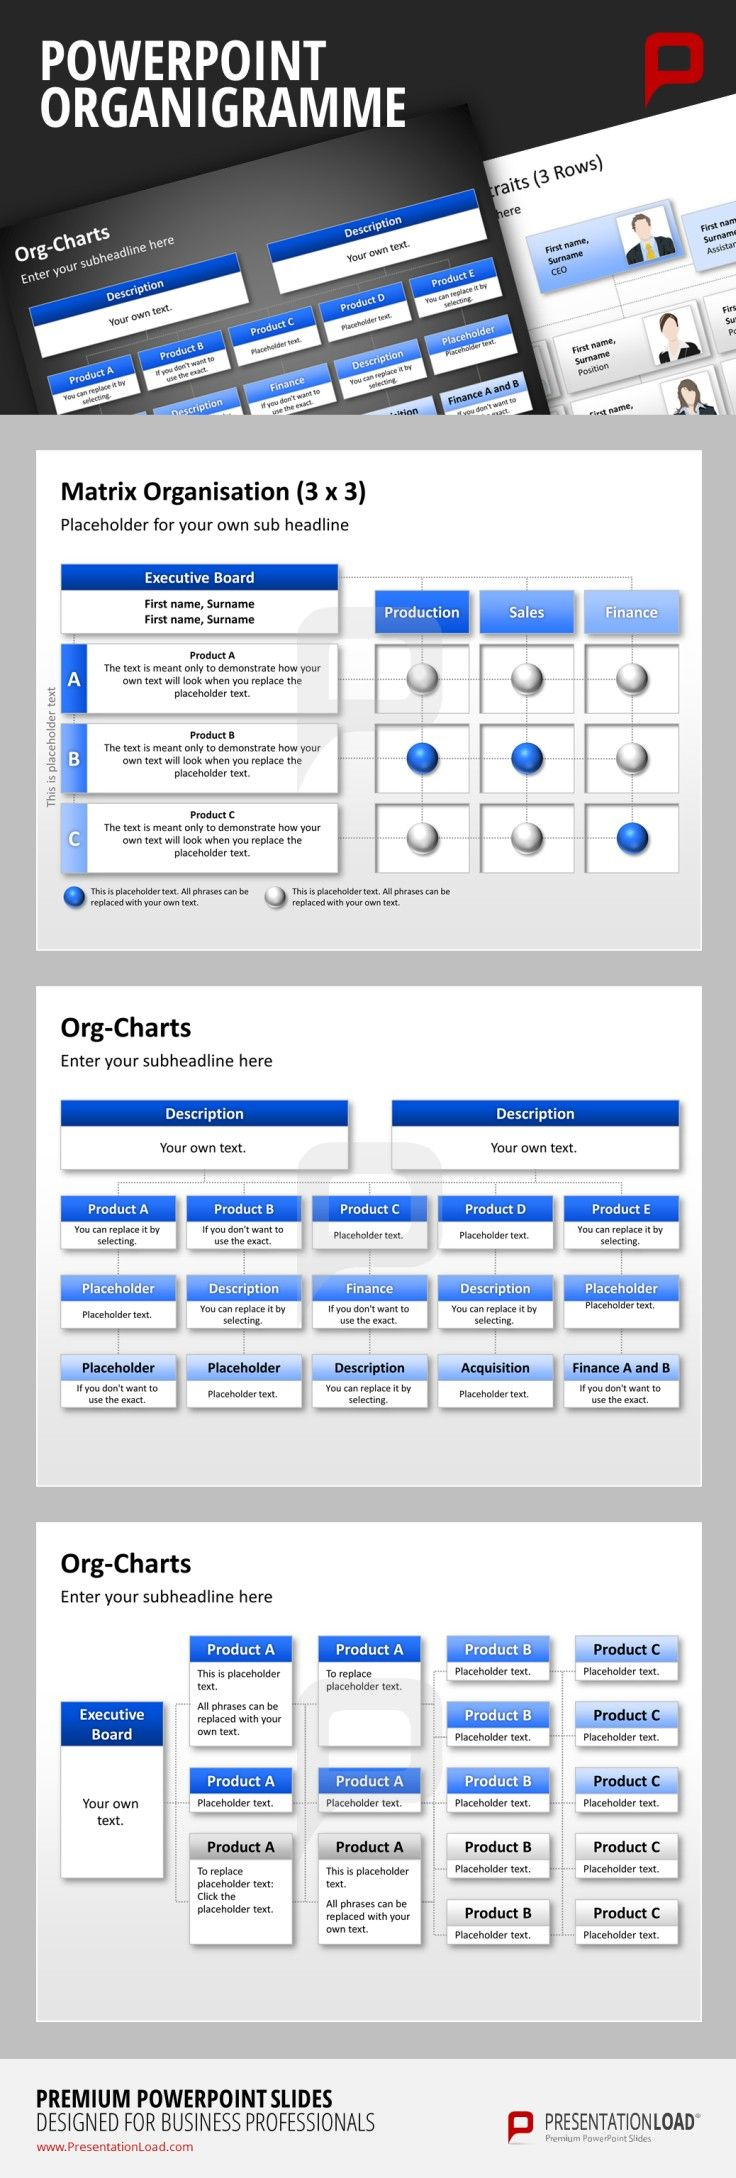 23 best ORGANIGRAMM // POWERPOINT images on Pinterest ...